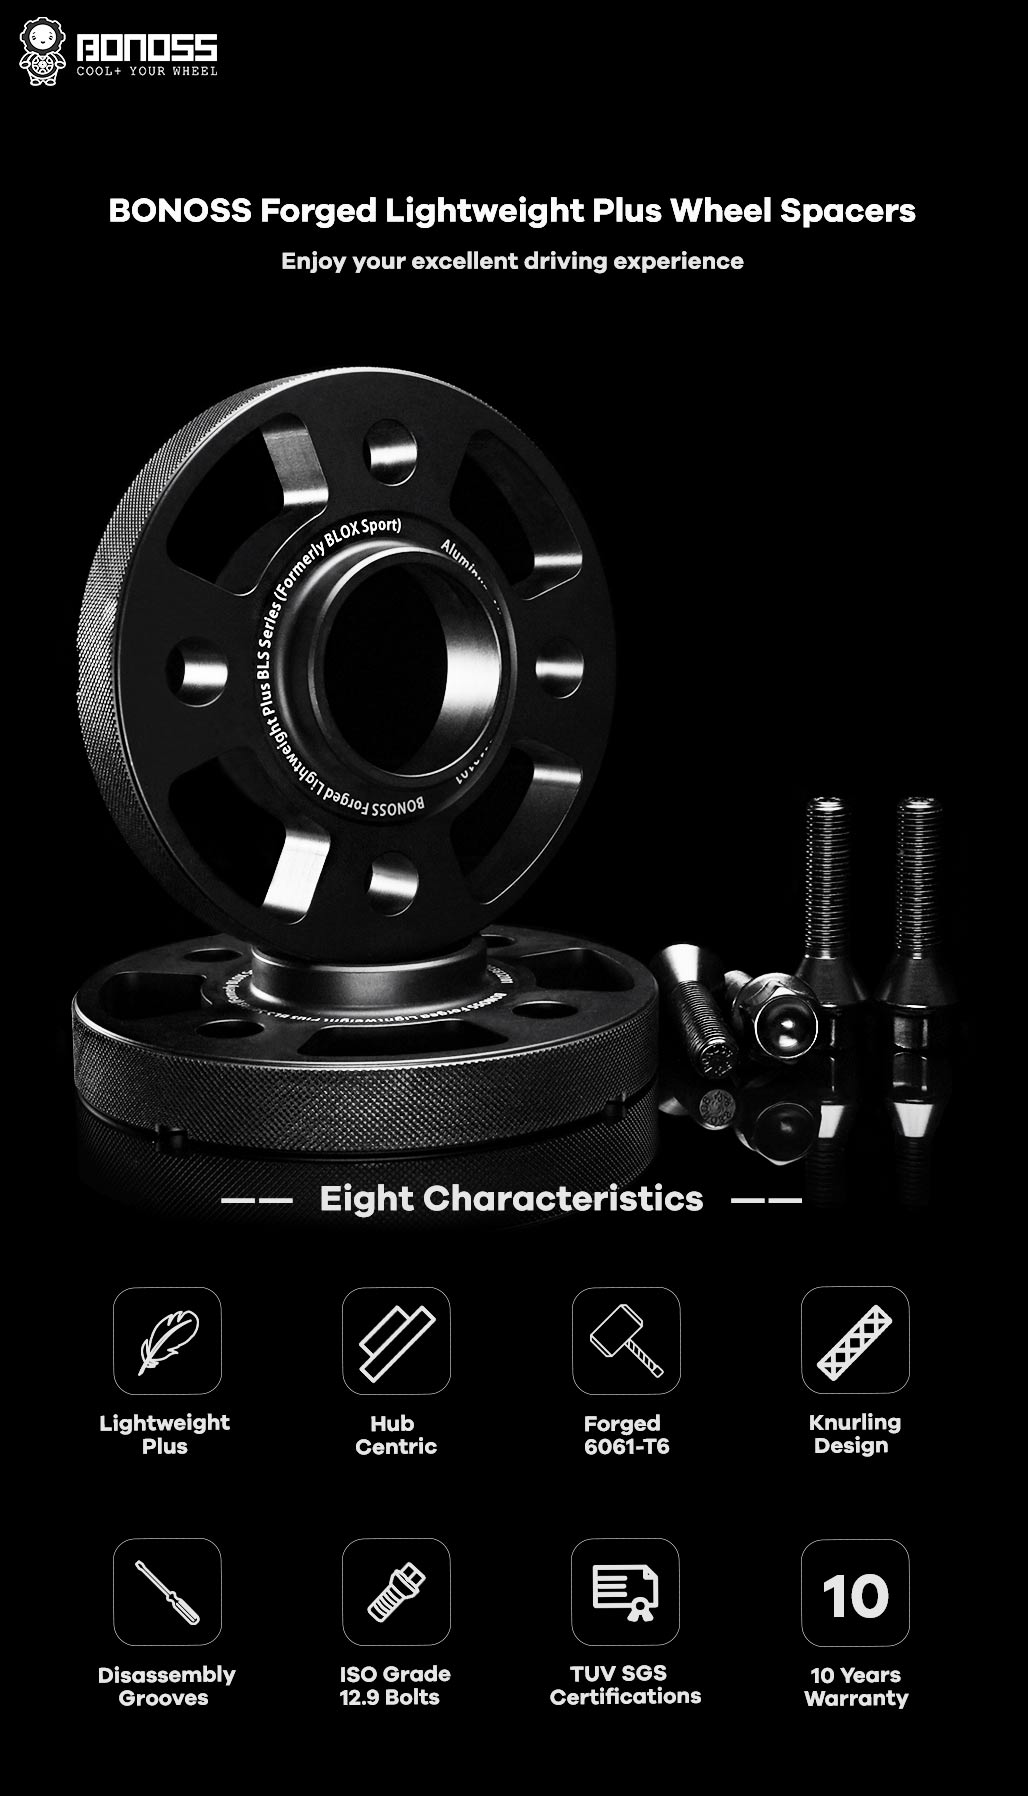 AL6061-T6-BONOSS-forged-lightweight-plus-hubcentric-4Lug-wheel-spacers-by lulu-1